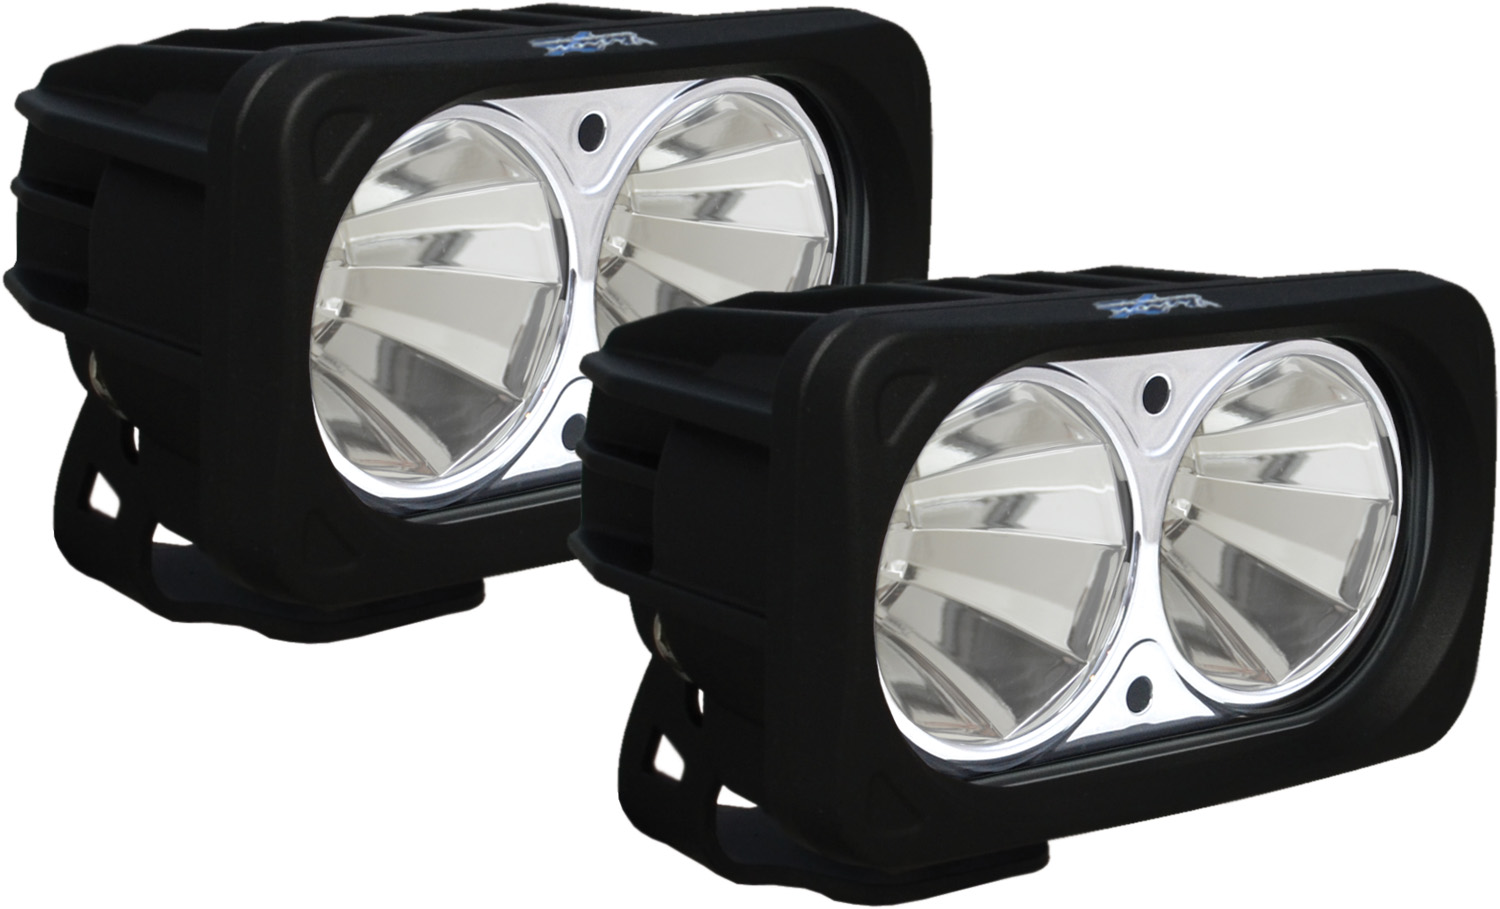 OPTIMUS SQUARE BLACK 2 10W LEDS 60° FLOOD KIT OF 2 LIGHTS